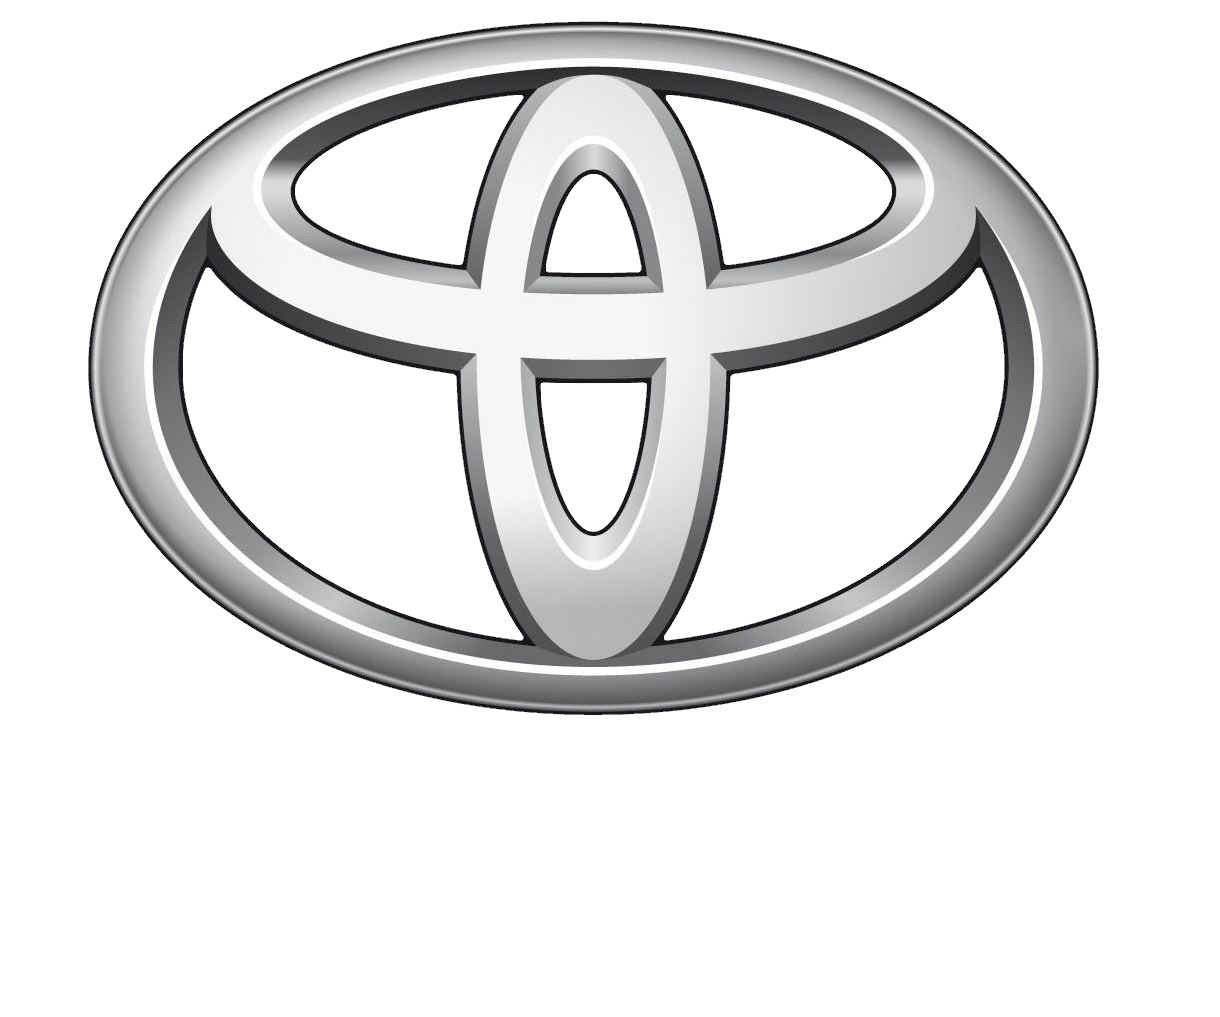 Toyota Logo Picture PNG Image-Toyota Logo Picture PNG Image-14